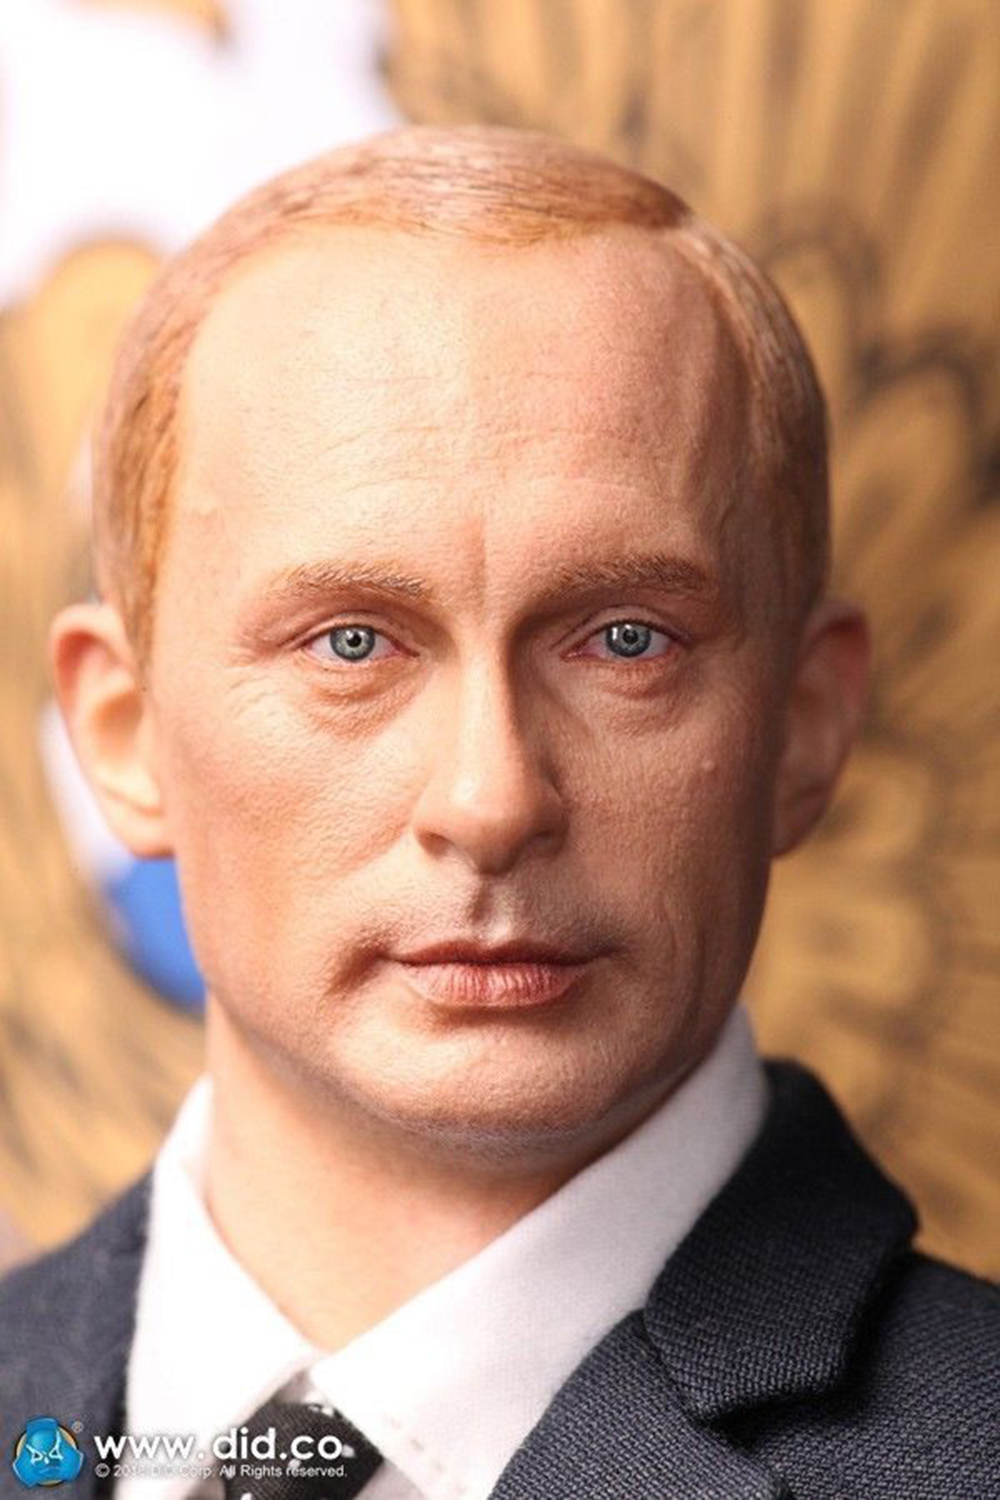 Full set 1/6 Vladimir Putin President of Russia R80114 Figure Model Collection 12'' Action Figure Model Toy for Collection 1